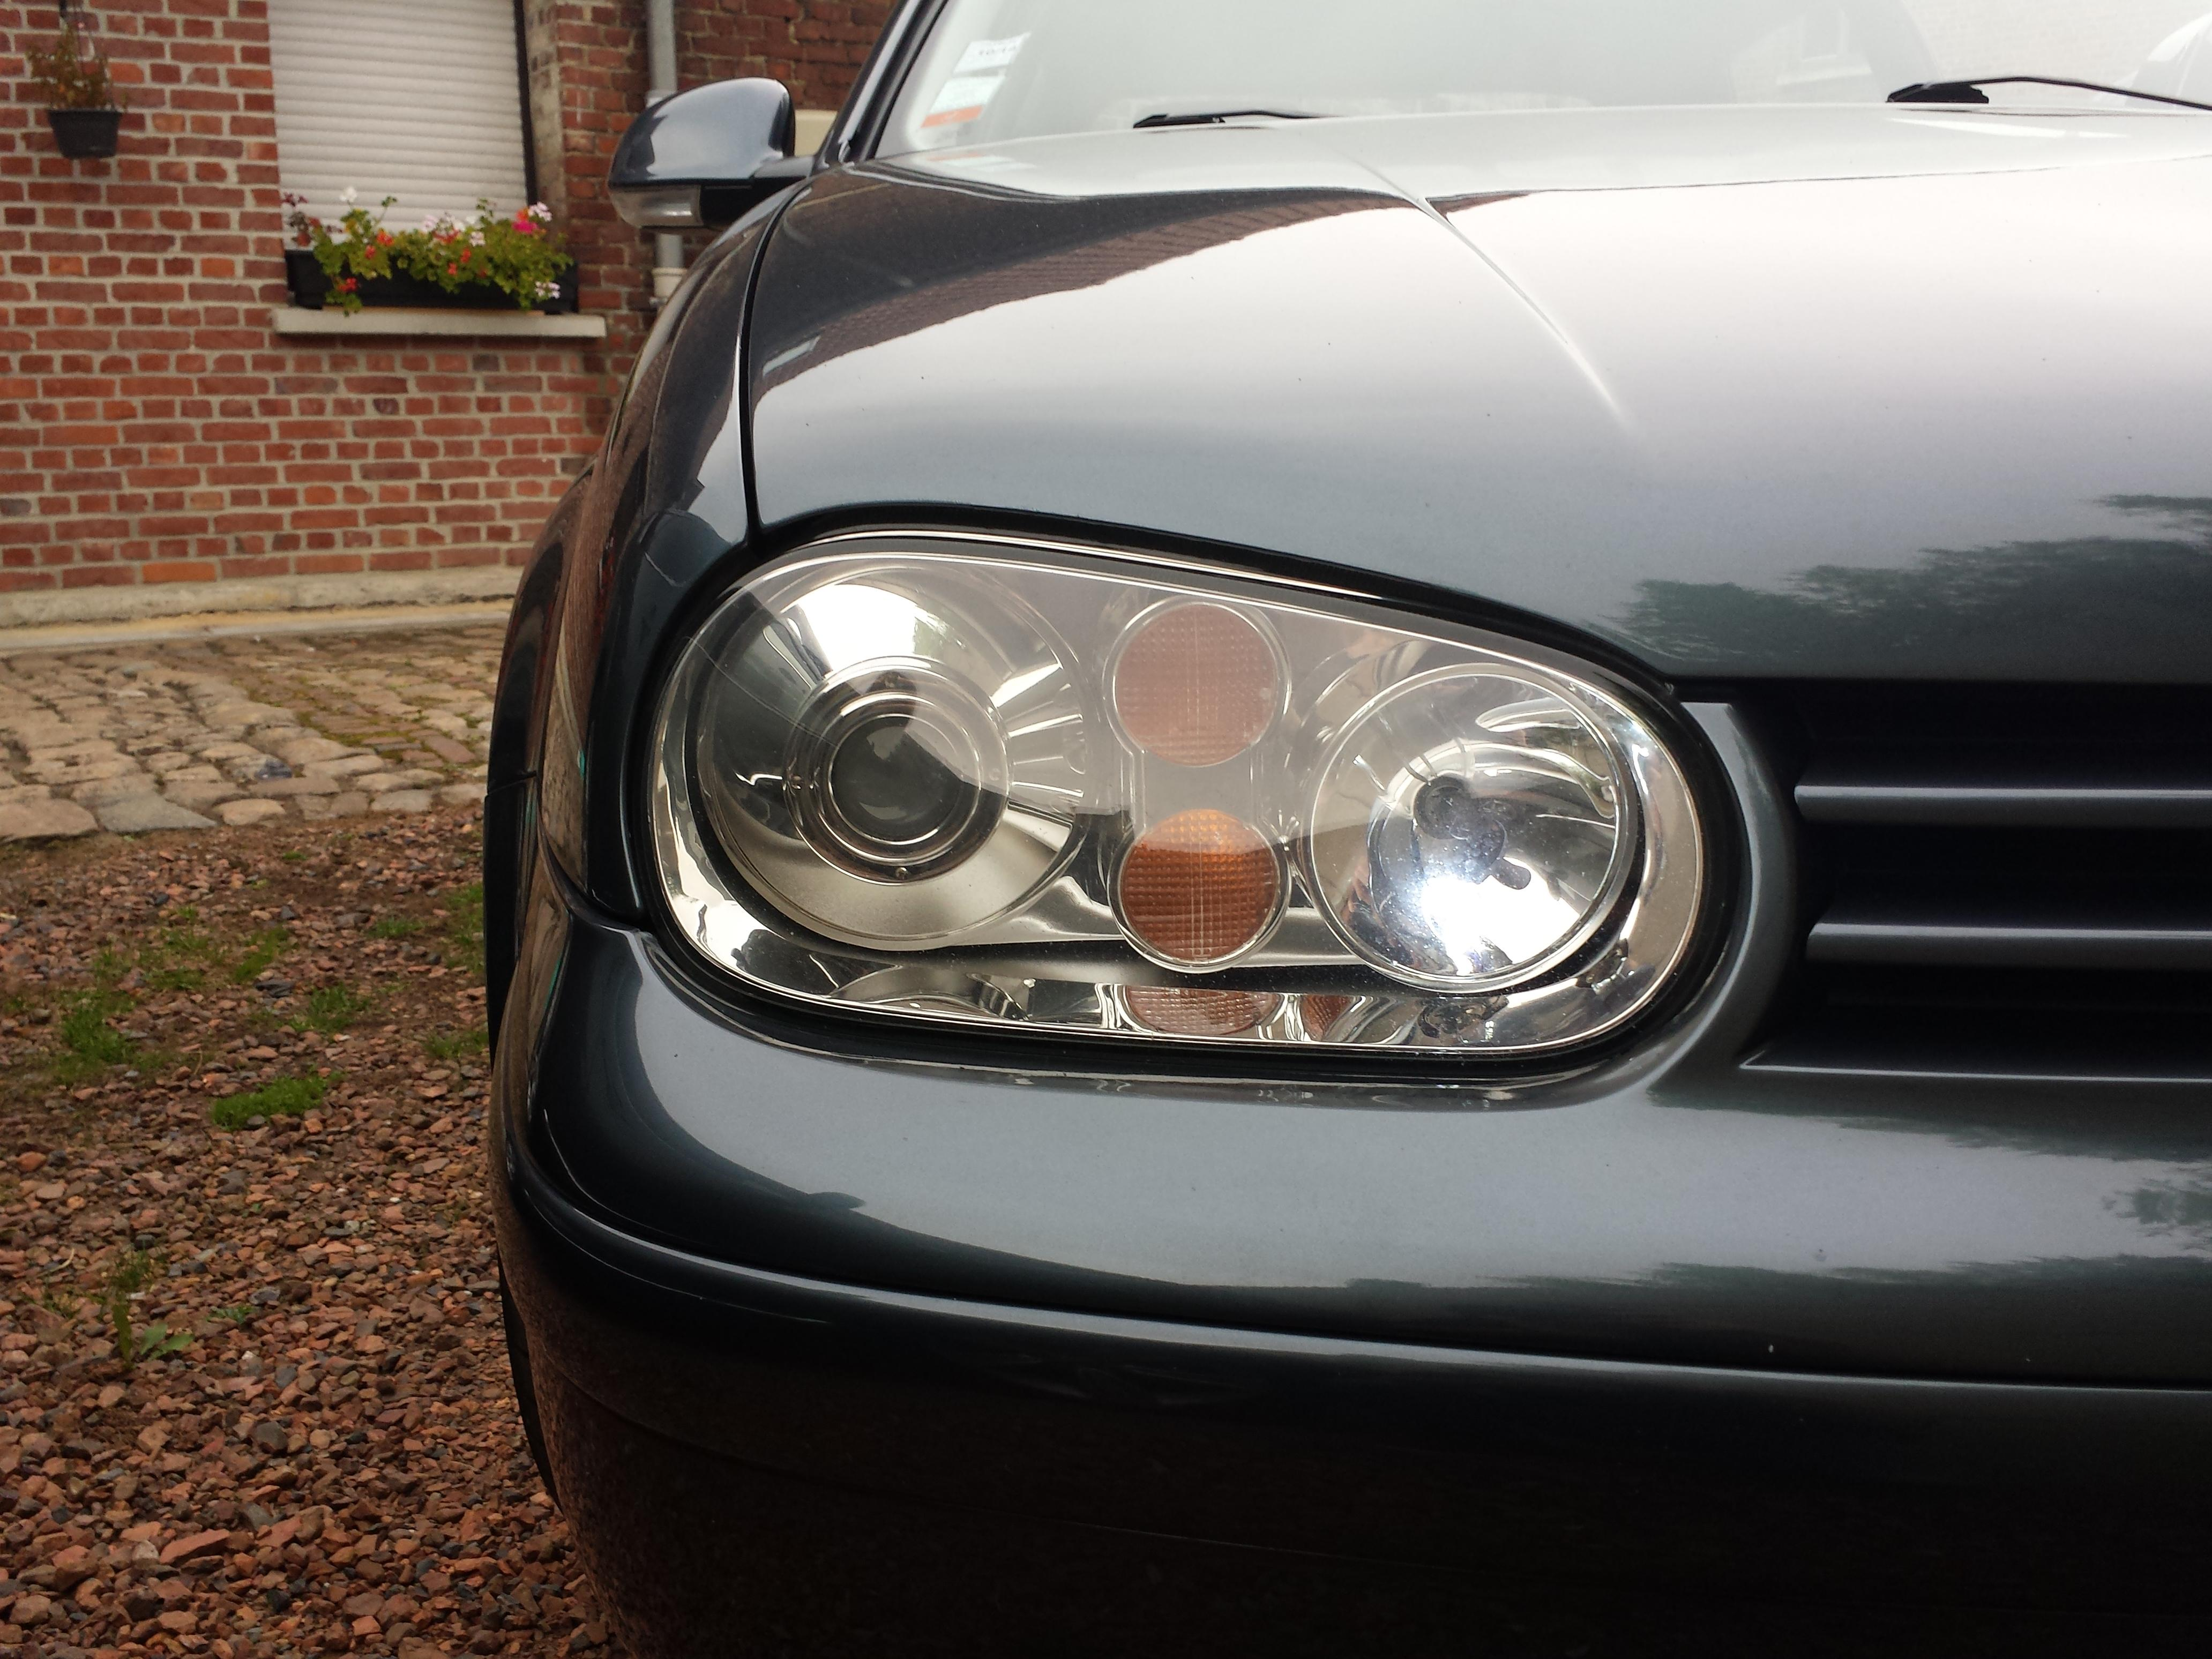 golf 4 tdi gti 115ch a son achat garage des golf iv tdi 115 page 5 forum volkswagen golf iv. Black Bedroom Furniture Sets. Home Design Ideas